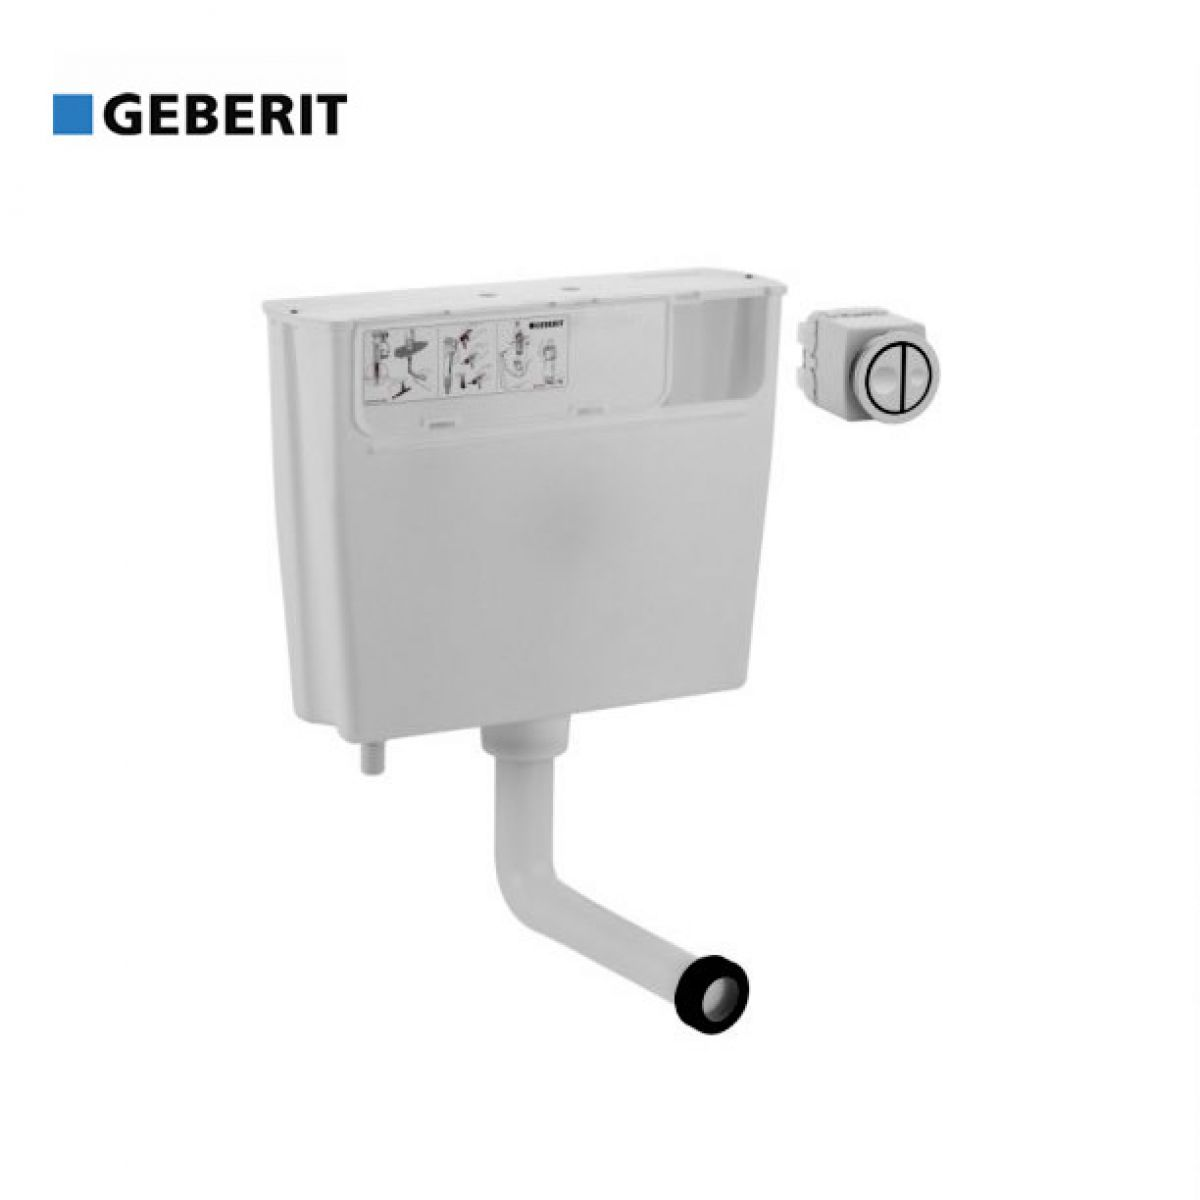 Geberit concealed furniture cistern with button flush uk for Geberit flush